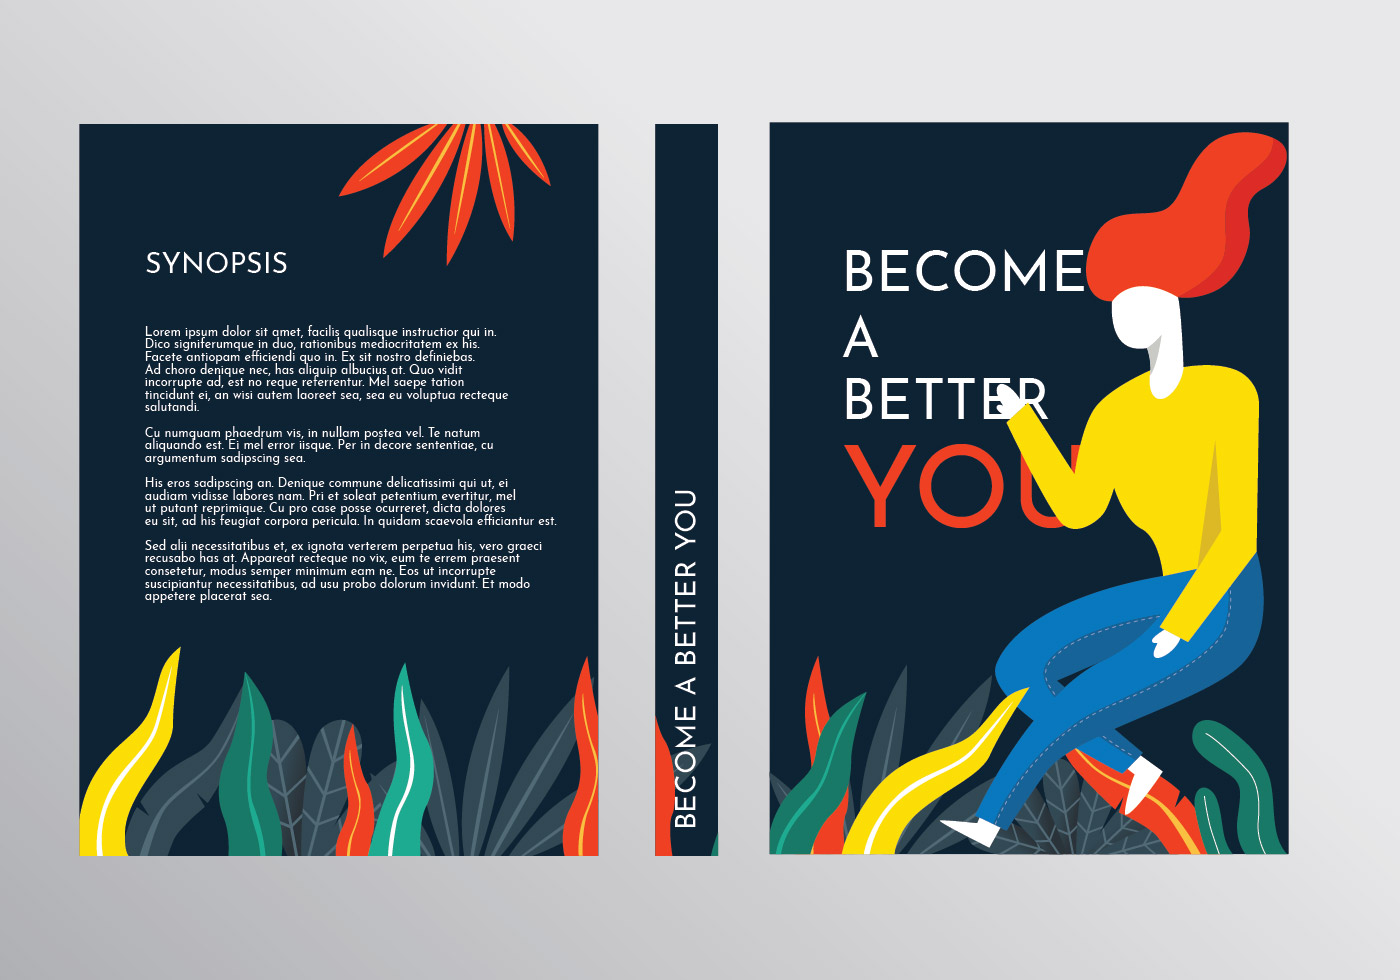 Book Cover Vector Graphic ~ Motivational book cover template vector download free art stock graphics images